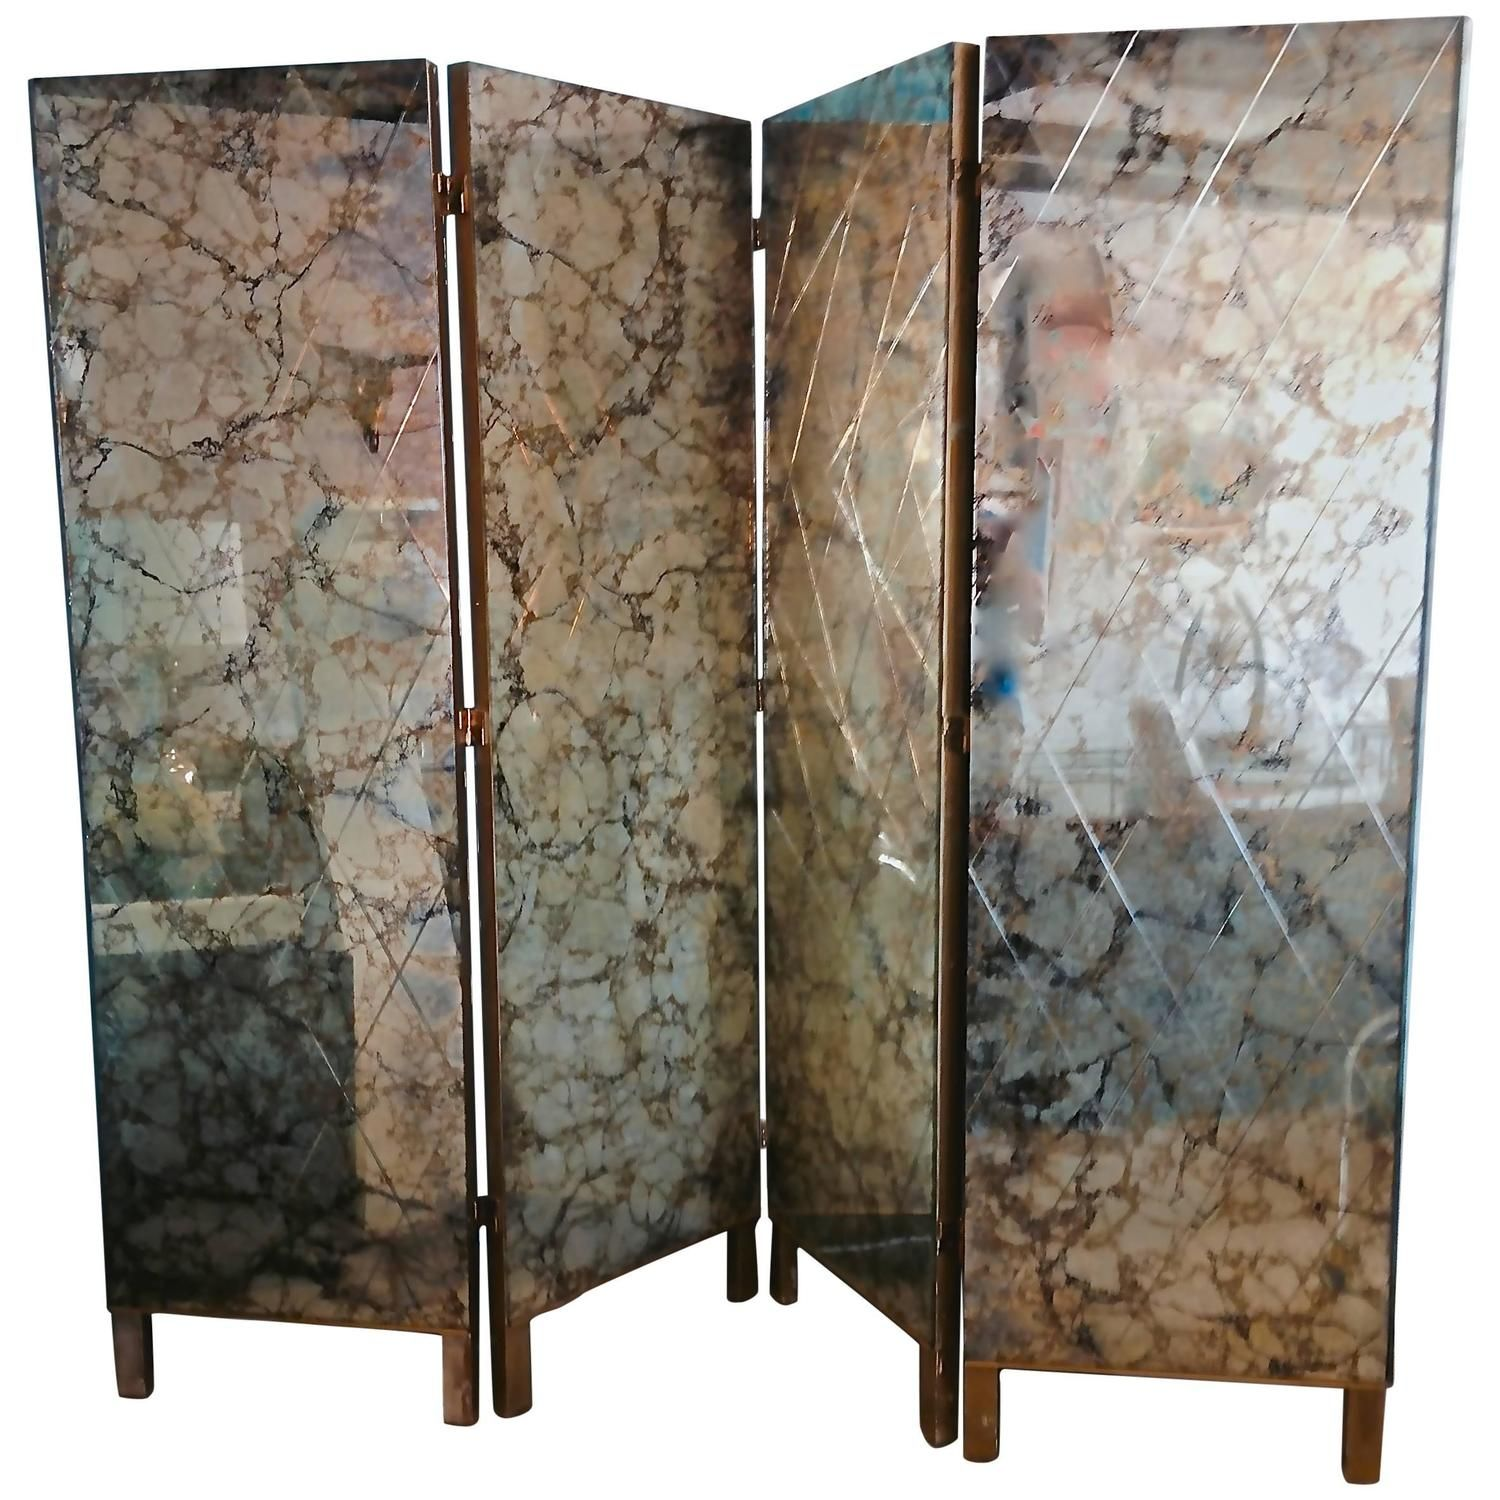 1950s Four Panel Verre glomis Mirror Screen Room Divider From